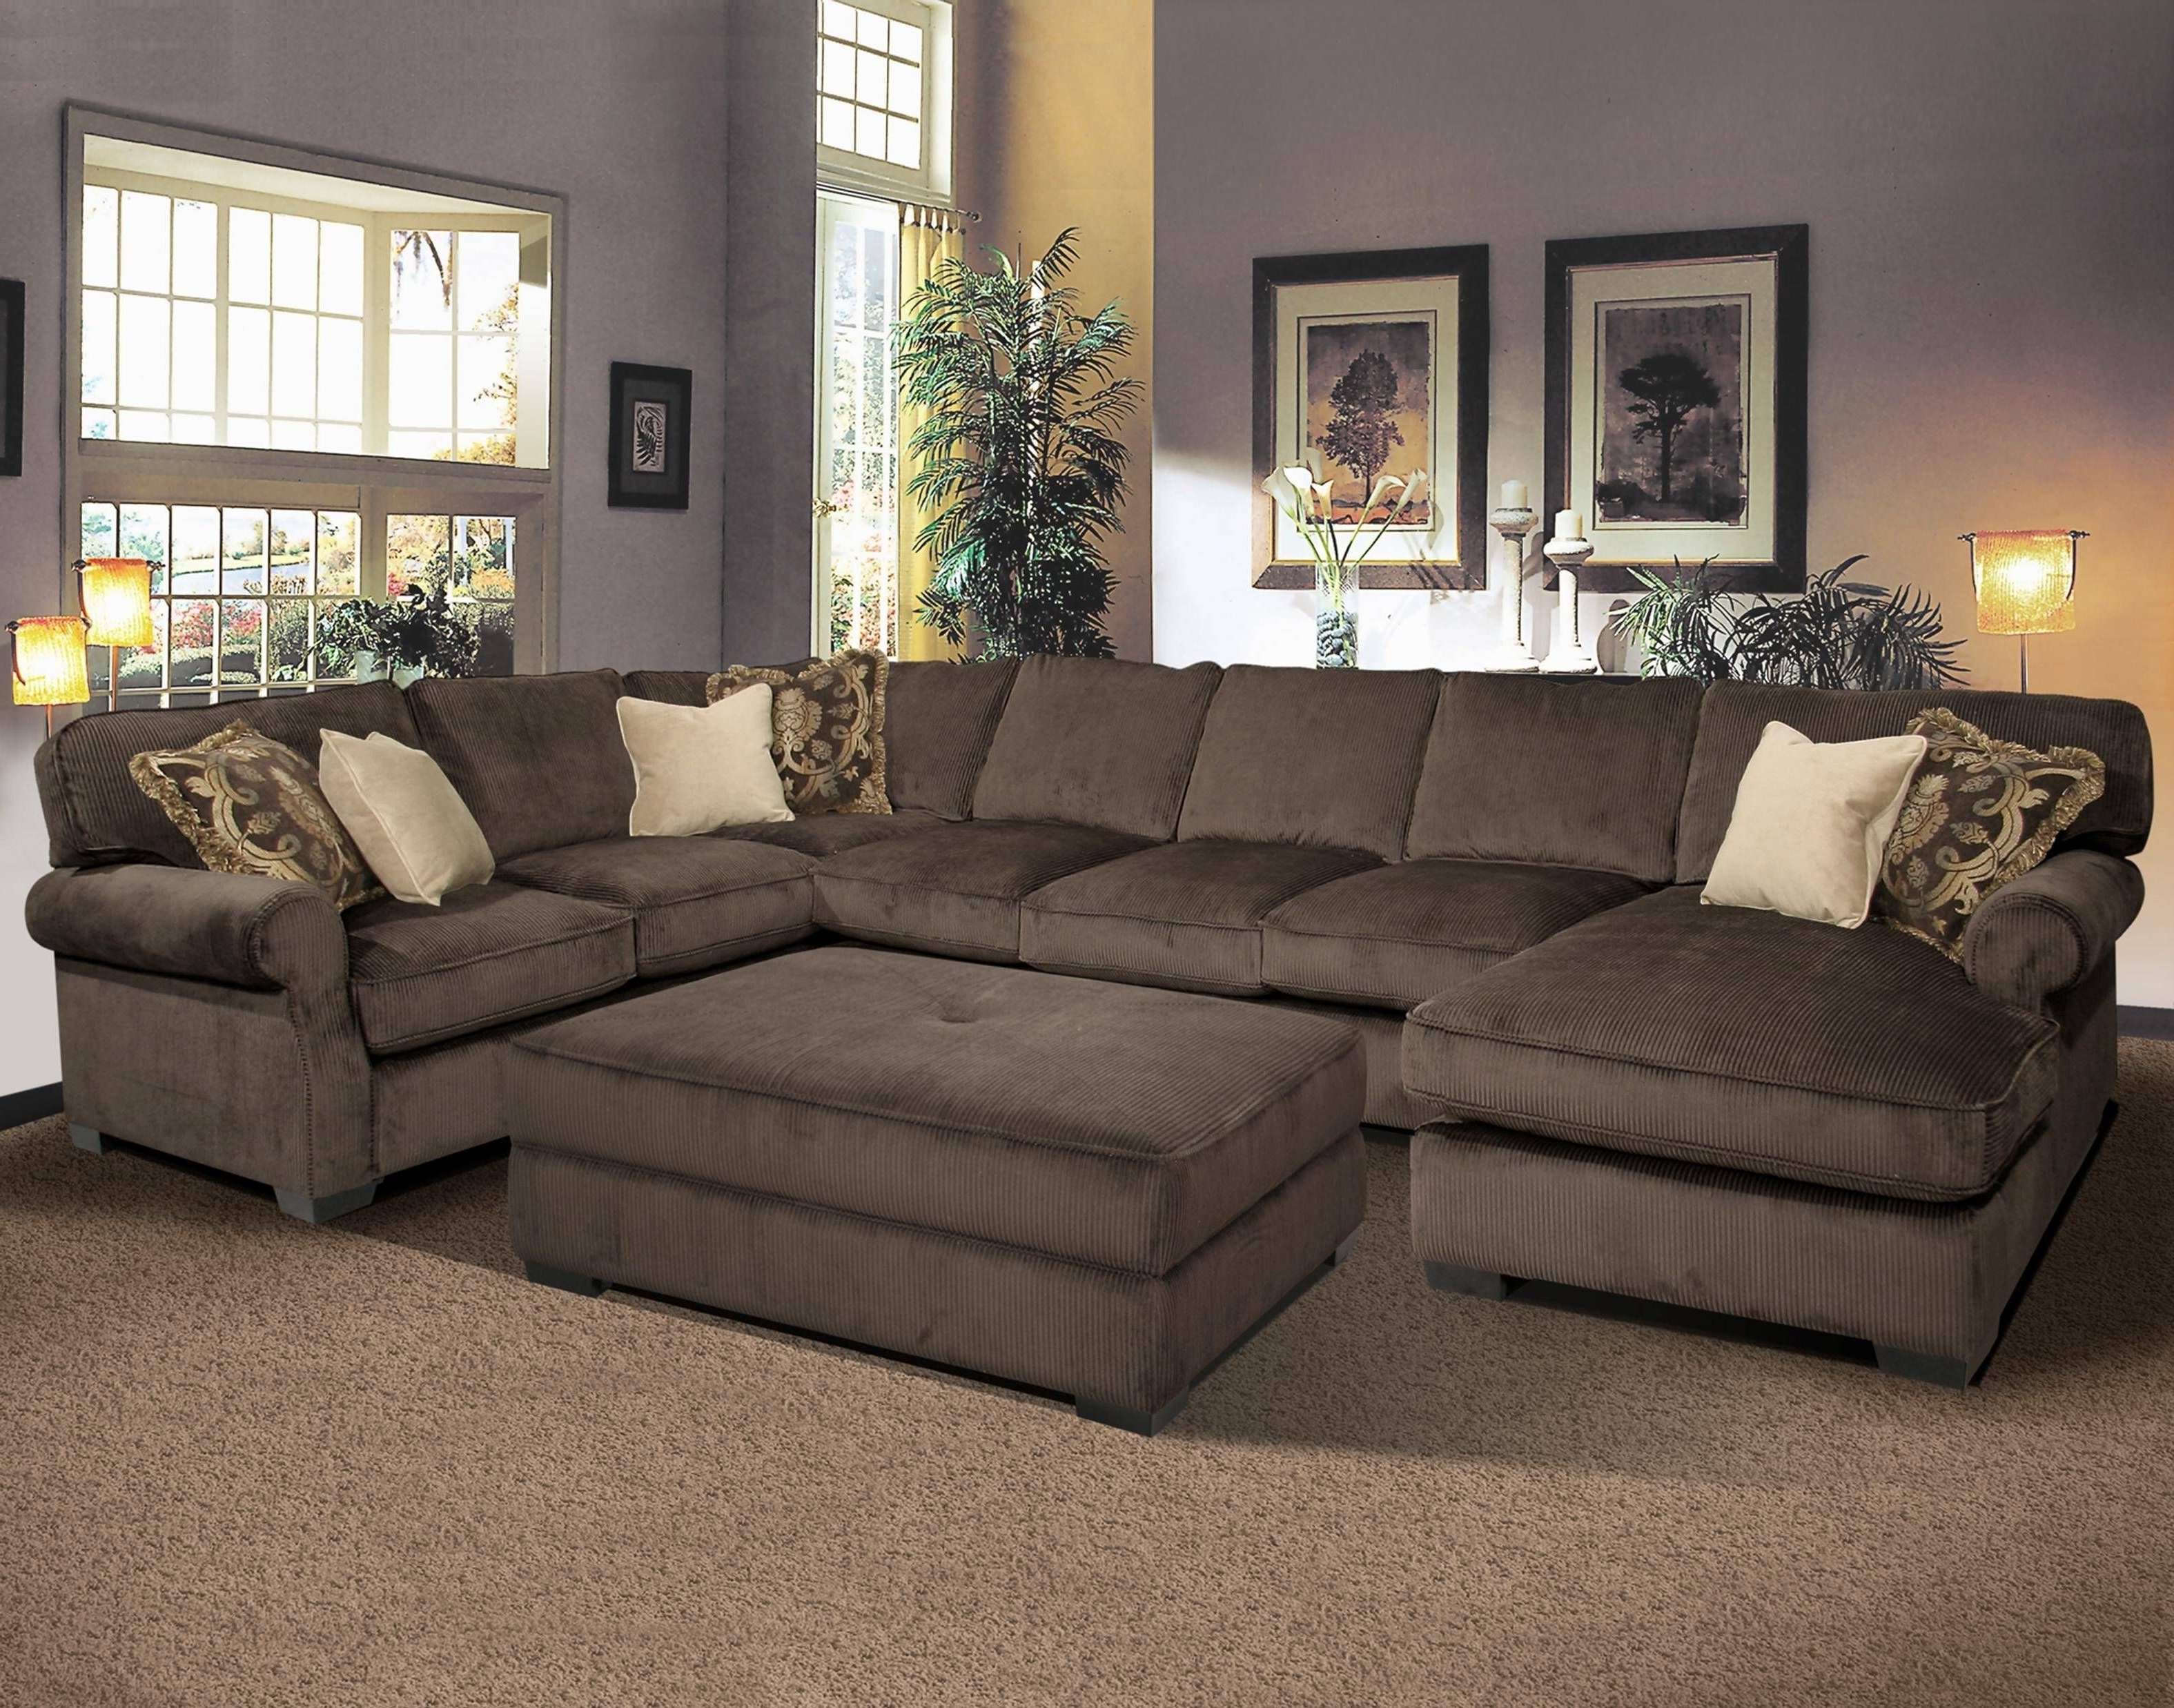 Shocking The Bestshaped Leather Sectional Sofa Pic Of Popular And With Current Sofa Sectionals With Chaise (View 7 of 15)